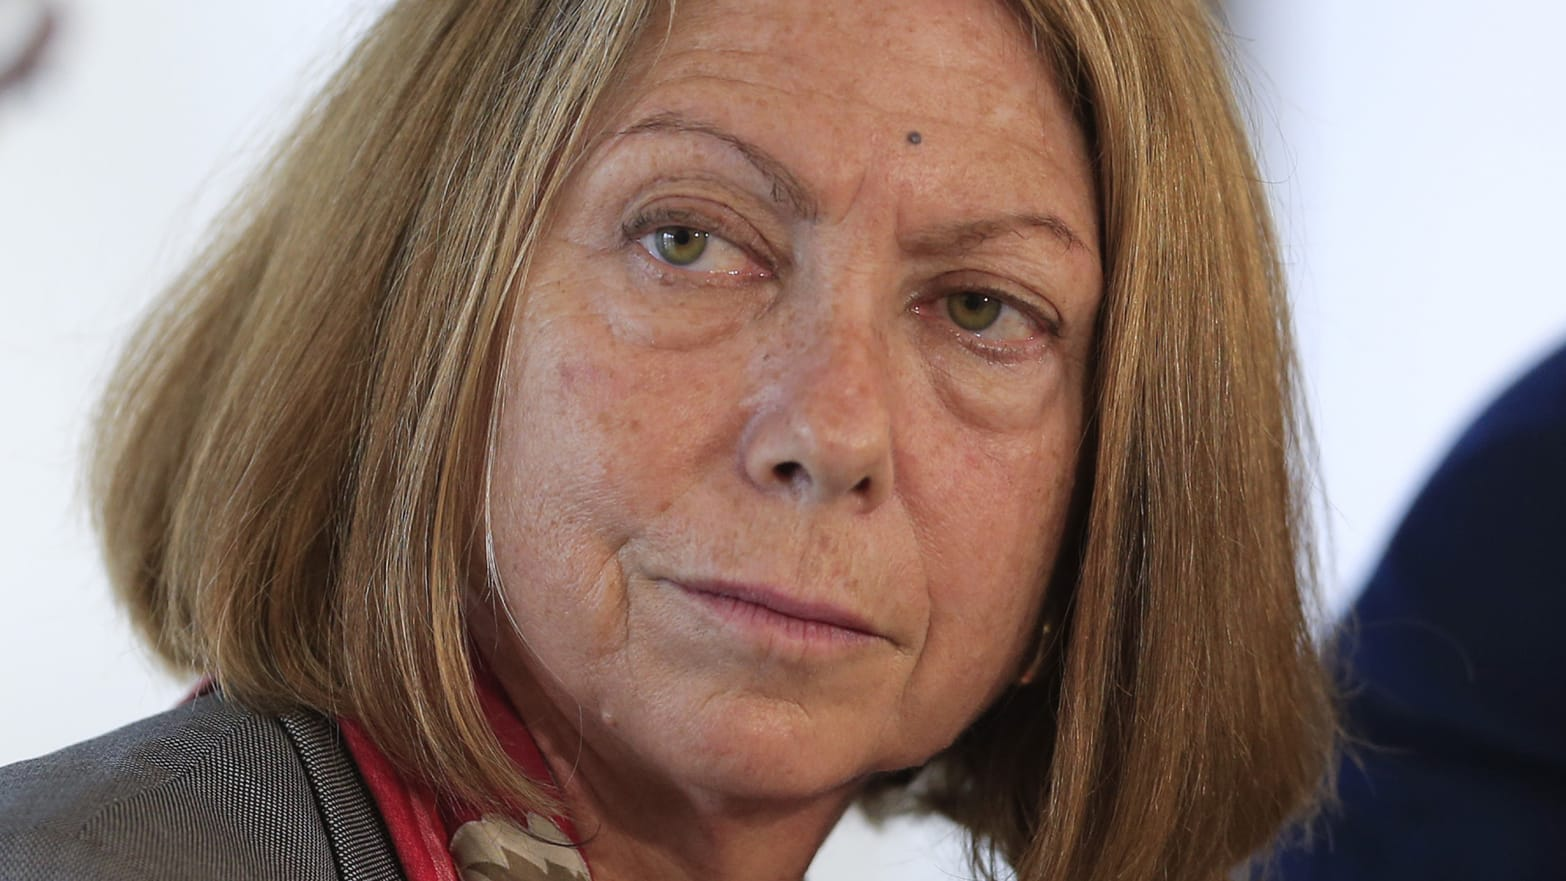 Jill Abramson, Ex-New York Times Editor: The 'Narcissistic' NYT Is Making 'Horrible Mistakes,' Needs a 'Course Correction'